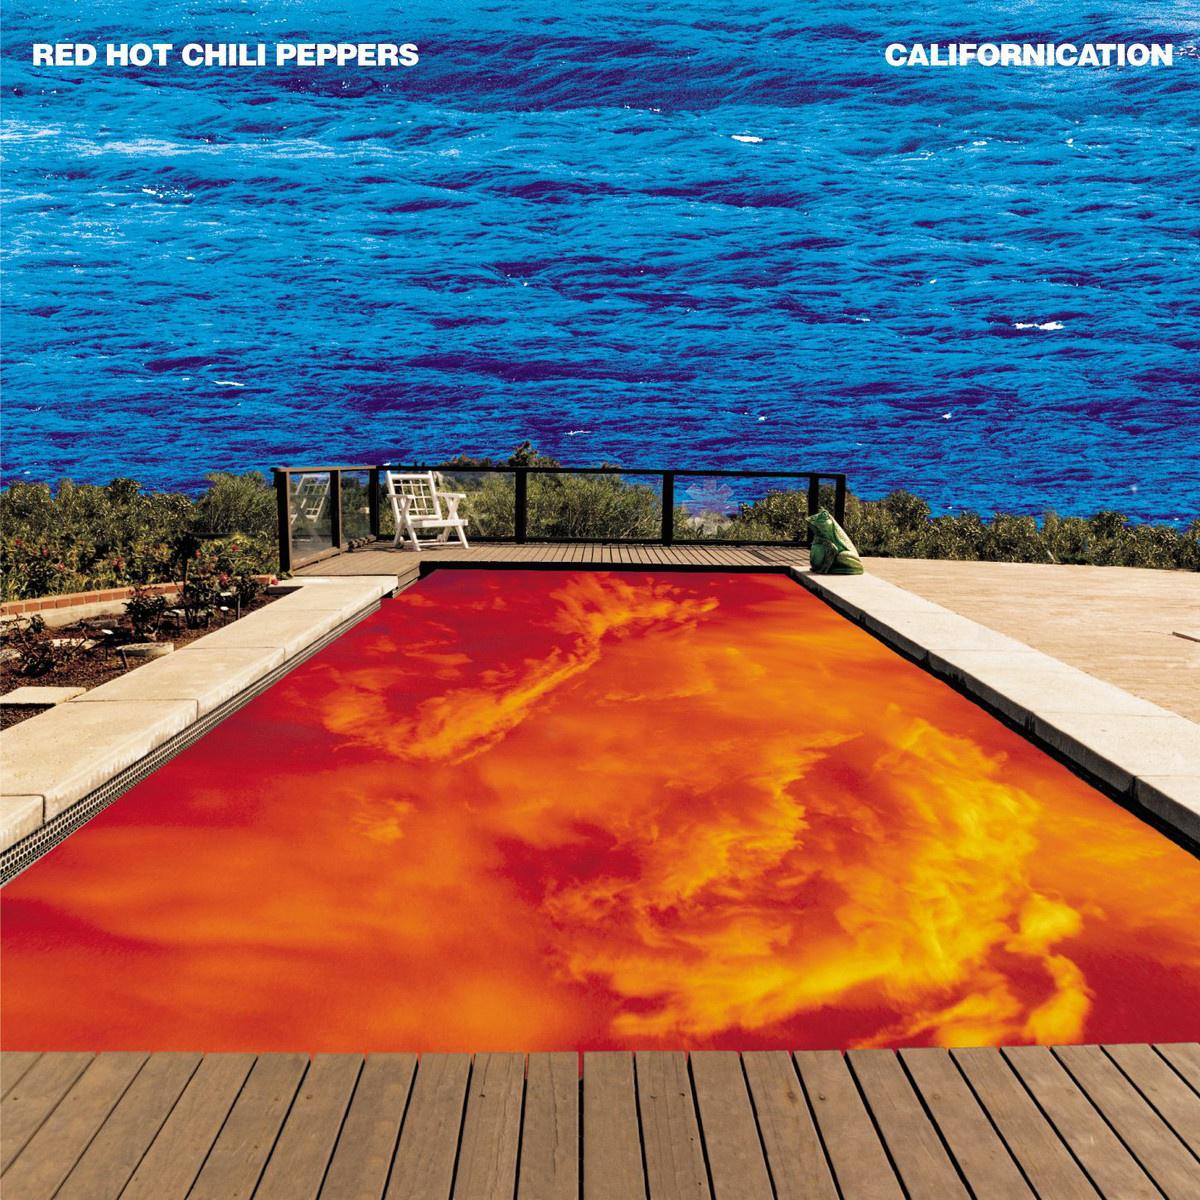 Red Hot Chili Peppers - Californication 老牌摇滚